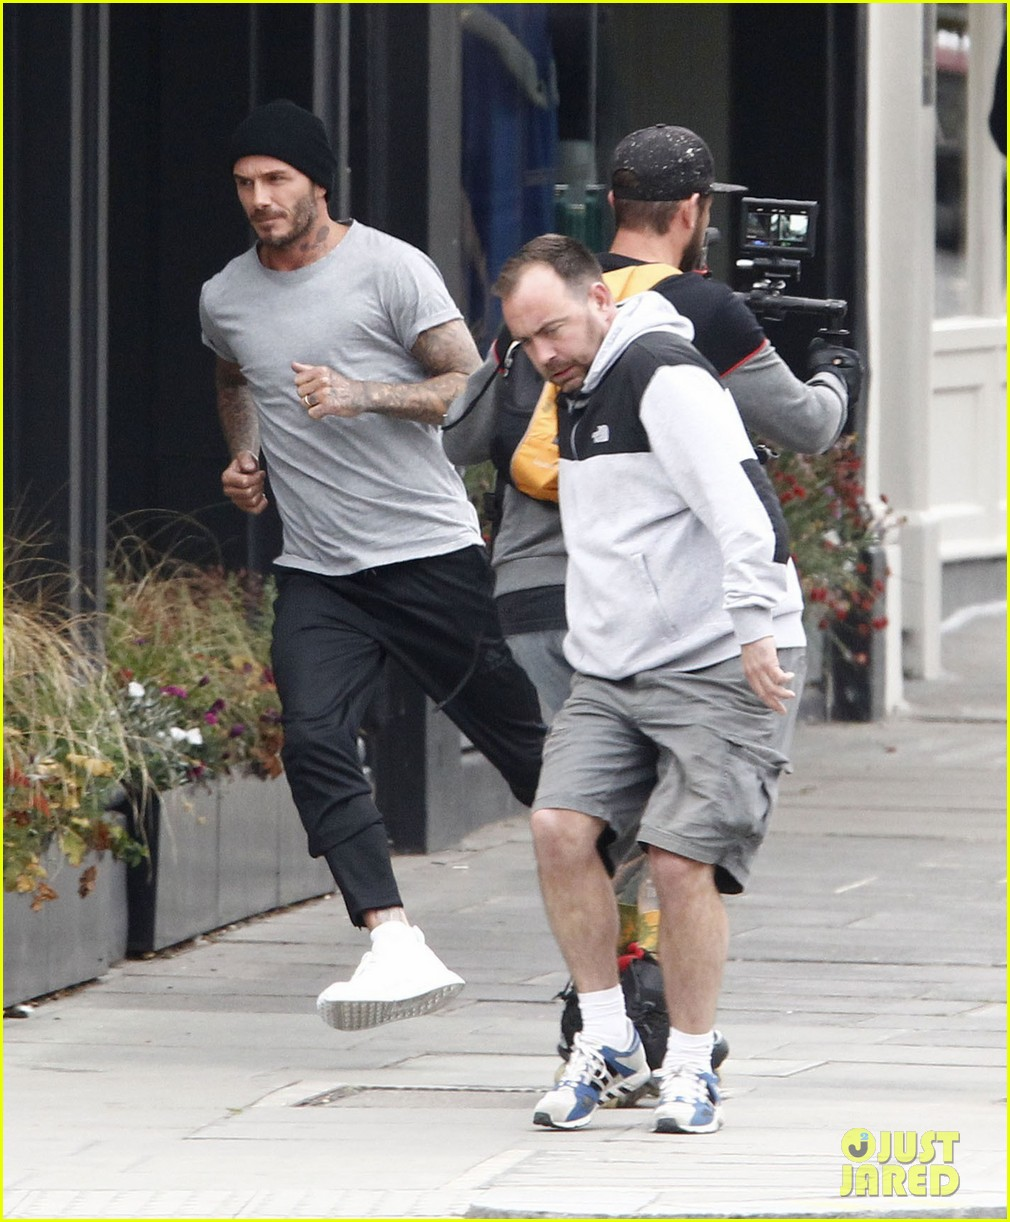 David Beckham Races Around London While Ing New Adidas Ad